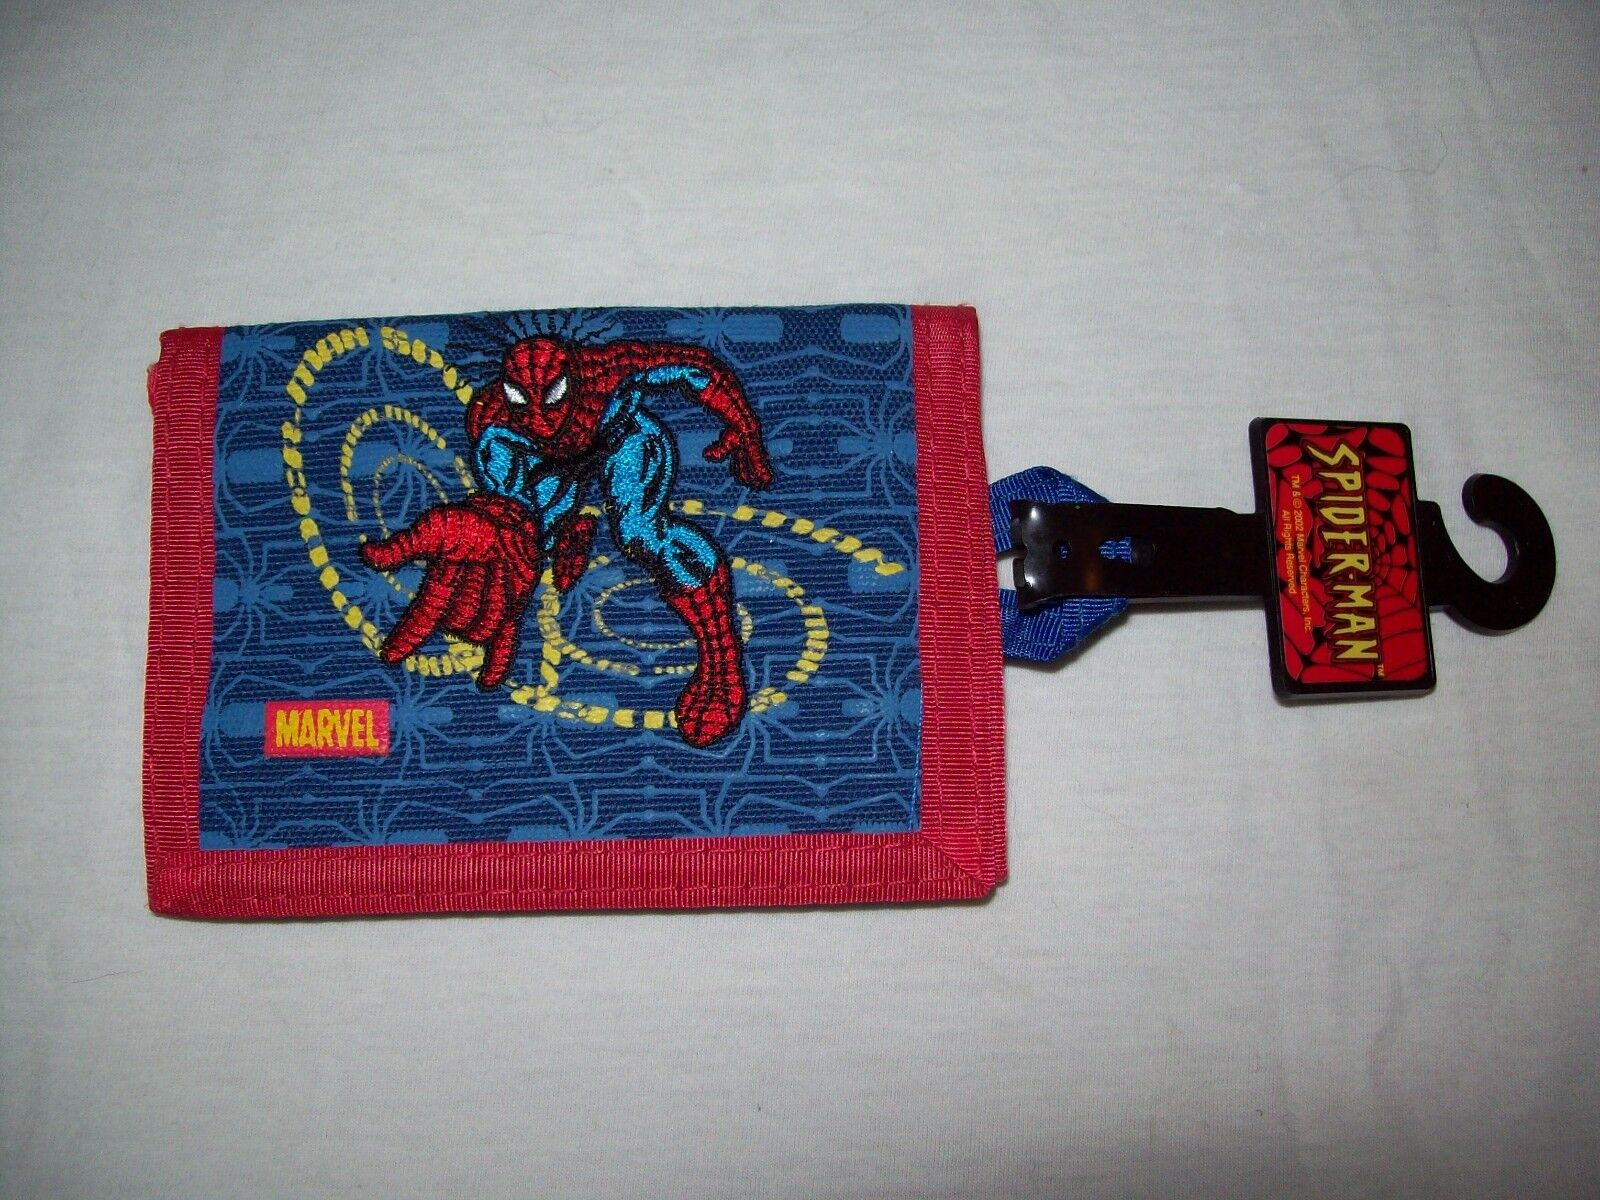 Vintage 2002 SPIDER-MAN Tri-fold EmbroideROT WALLET - BRAND with NEW with BRAND TAGS b77837